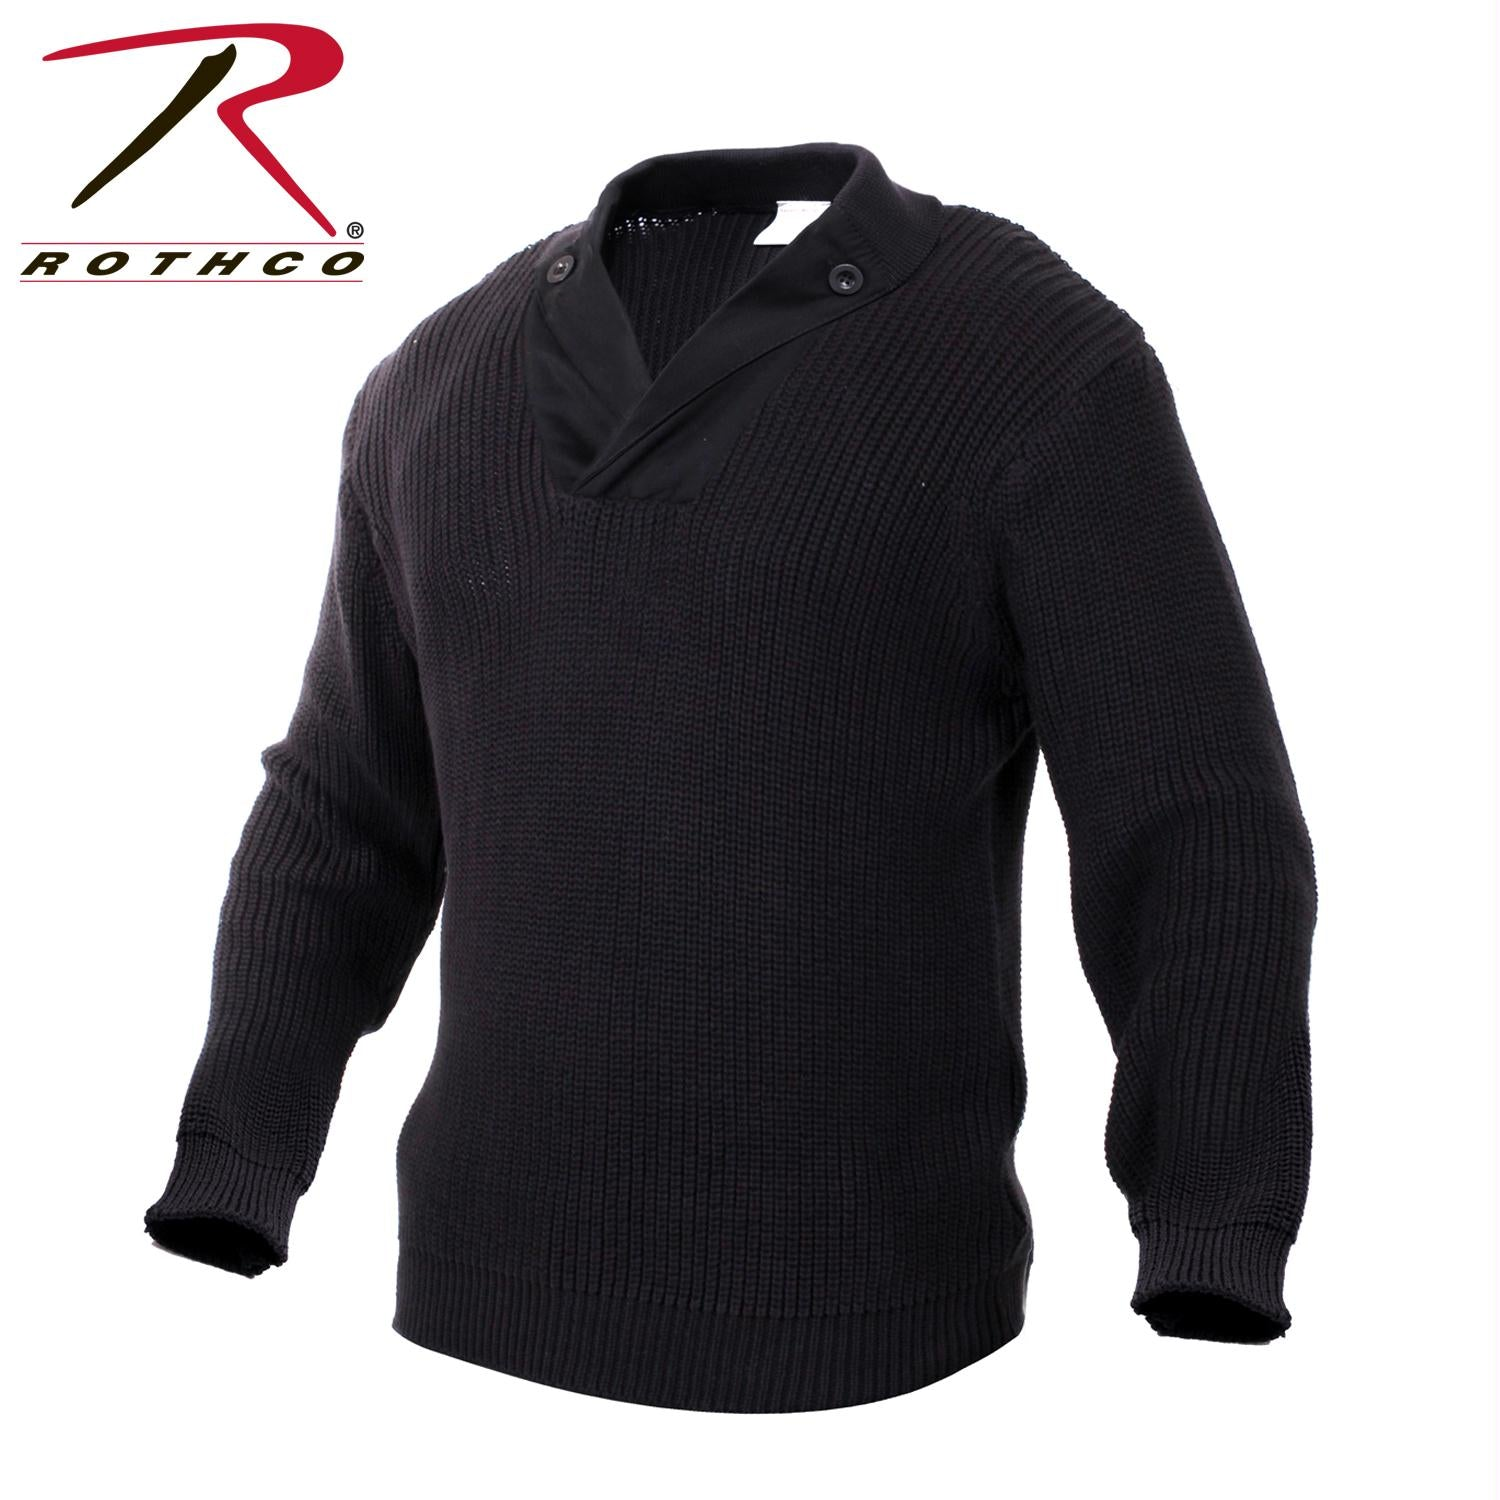 Rothco WWII Vintage Mechanics Sweater - Black / M